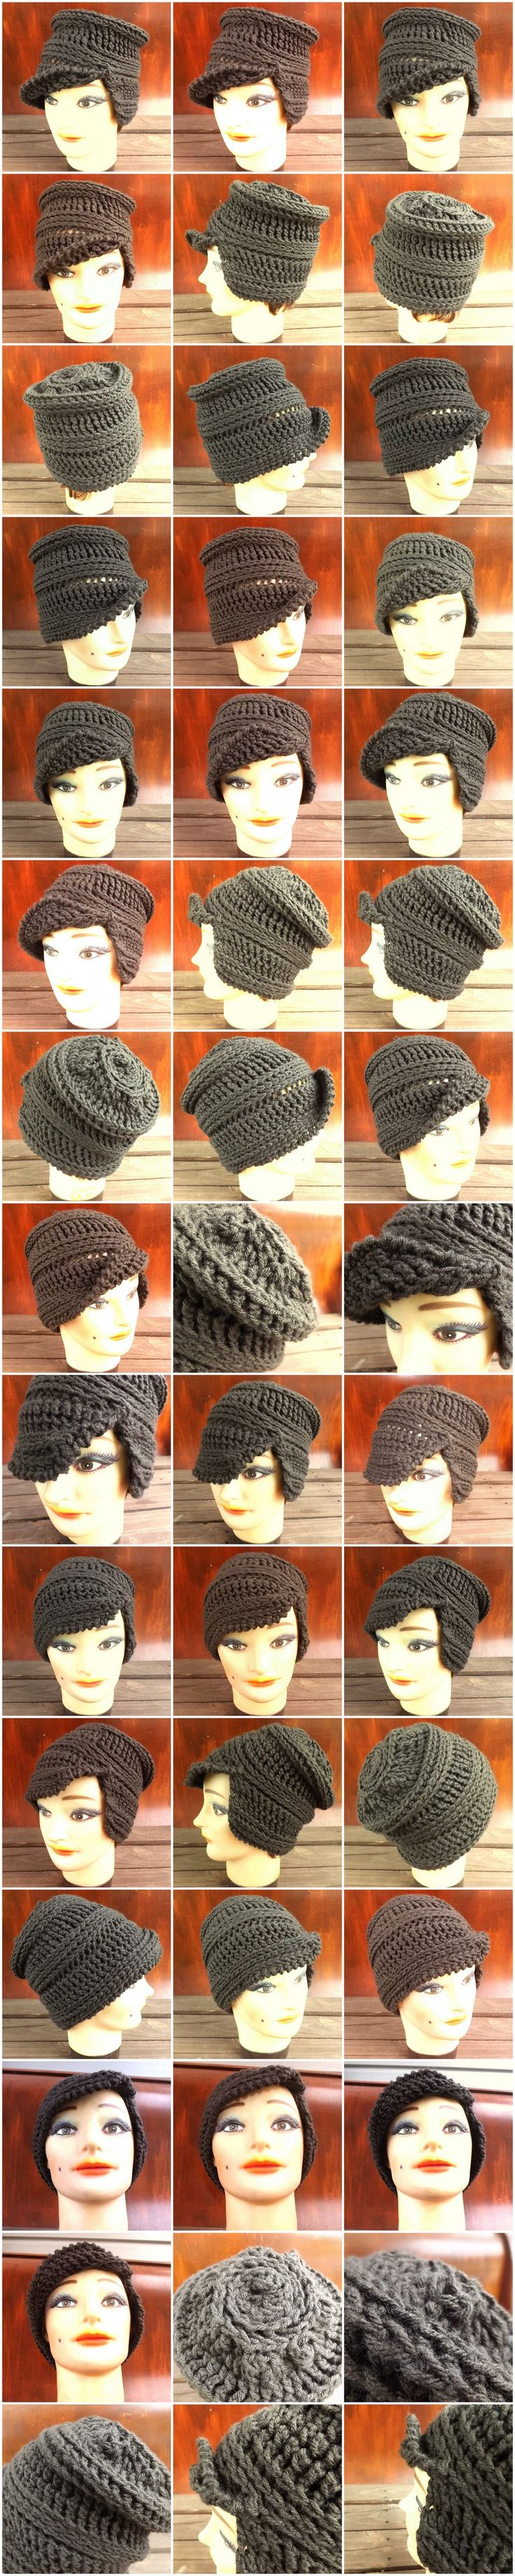 https://www.etsy.com/listing/76368756/crochet-hat-women-hat-clairisse-womens?ref=shop_home_active_search_query=clairisse%2Bbrown CLAIRISSE Crochet Beanie Hat in Coffee Brown by strawberrycouture $40.00